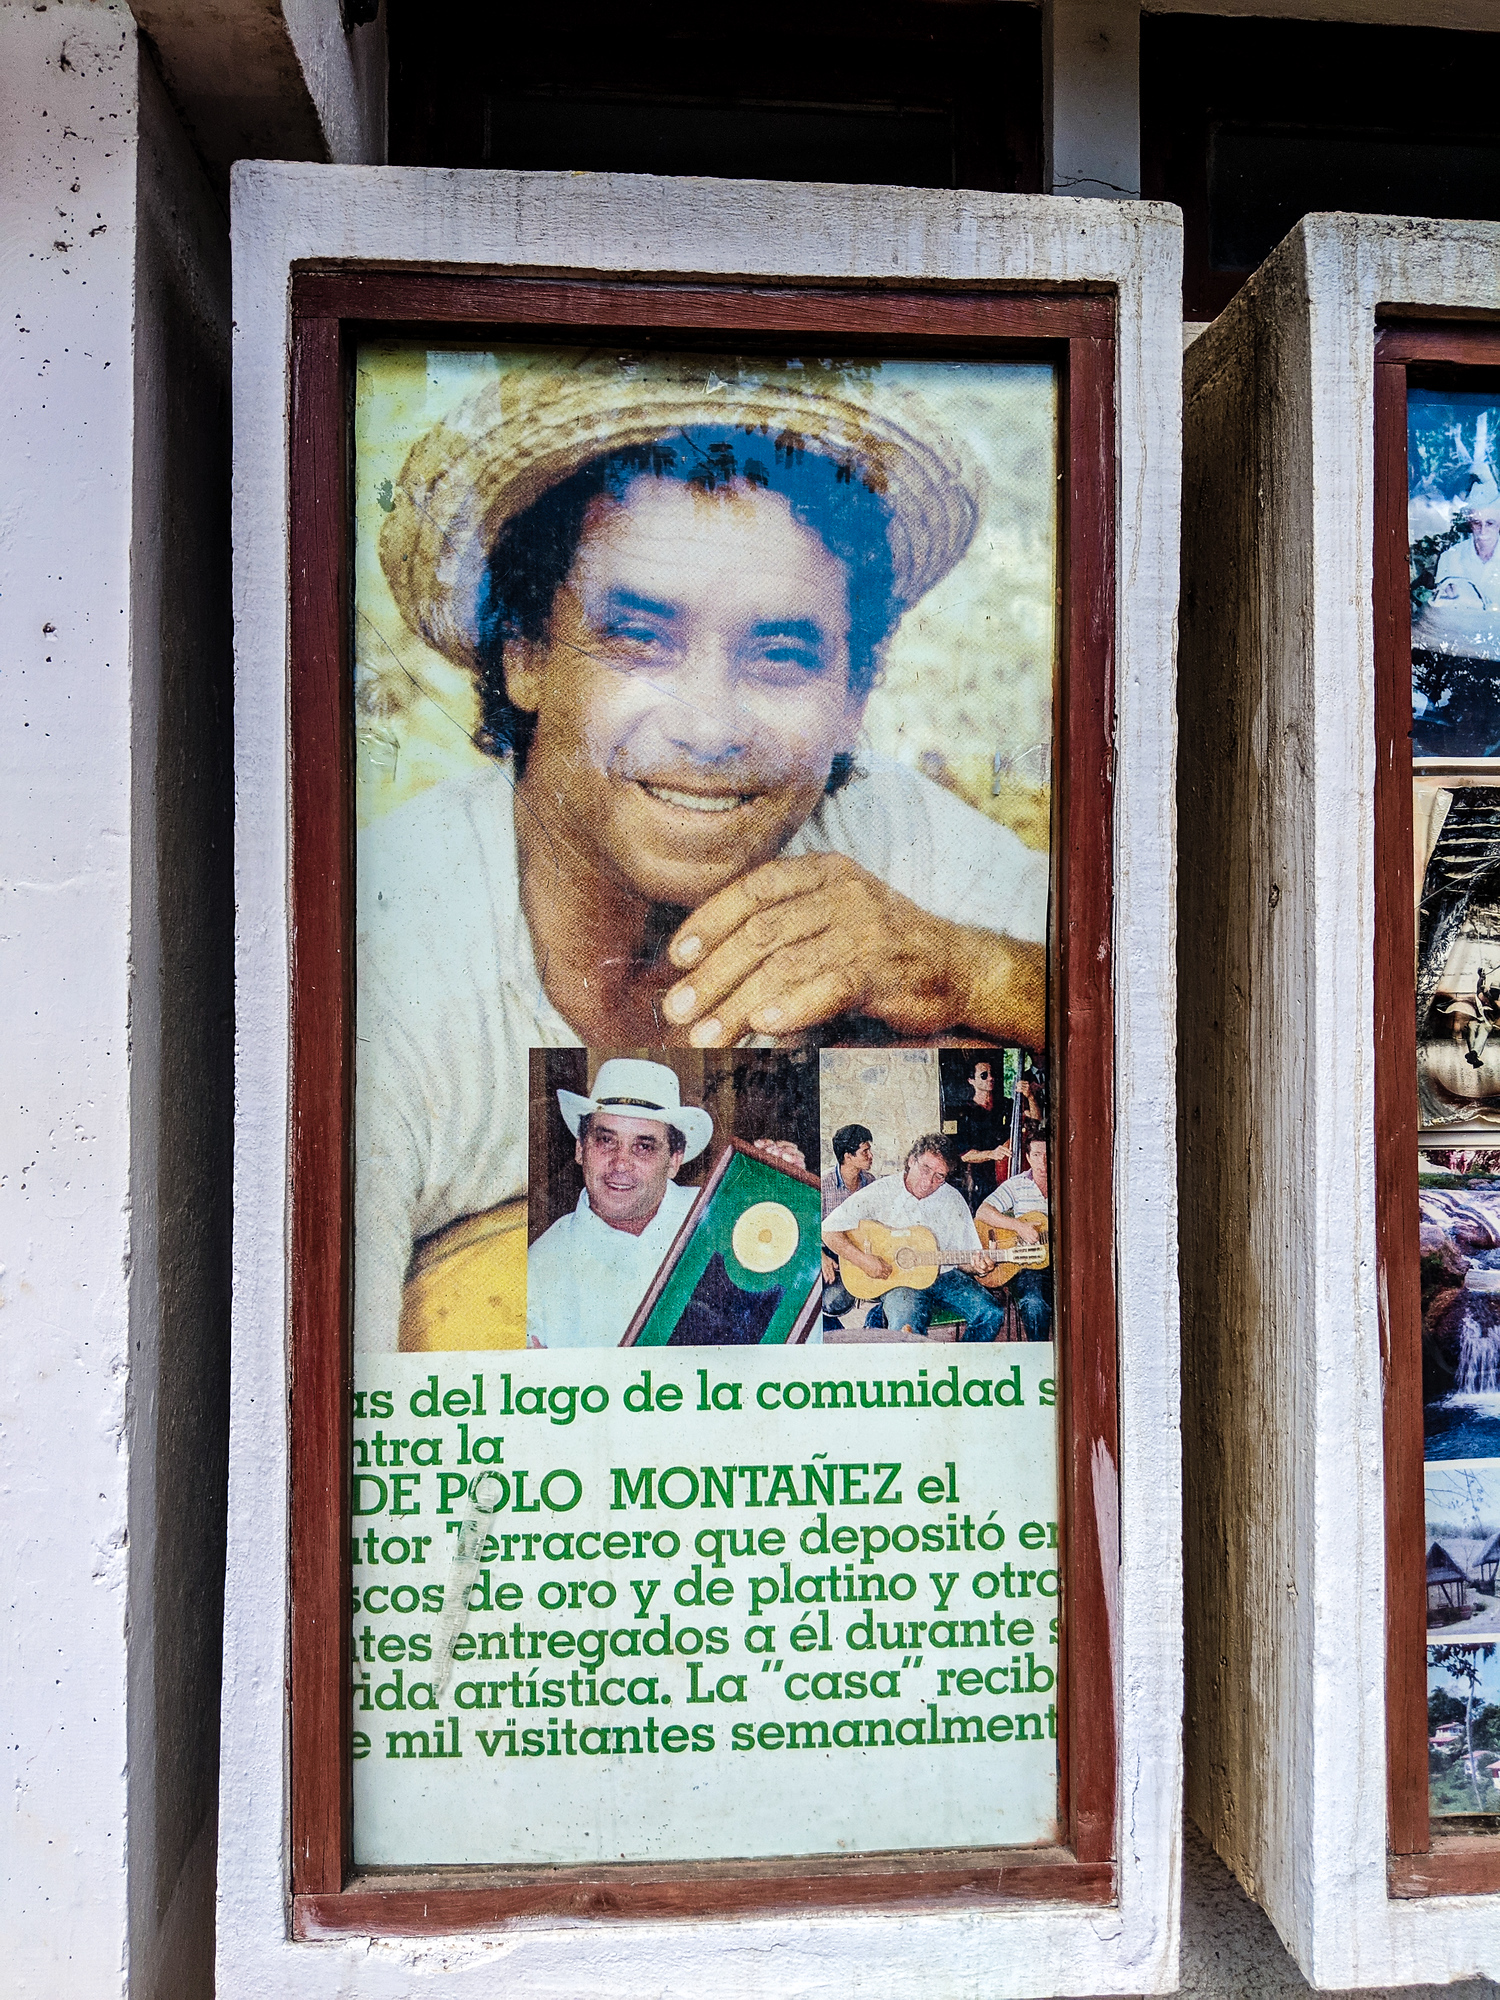 Polo Montanez museum in Las Terrazas Cuba, a famous musician in the country.